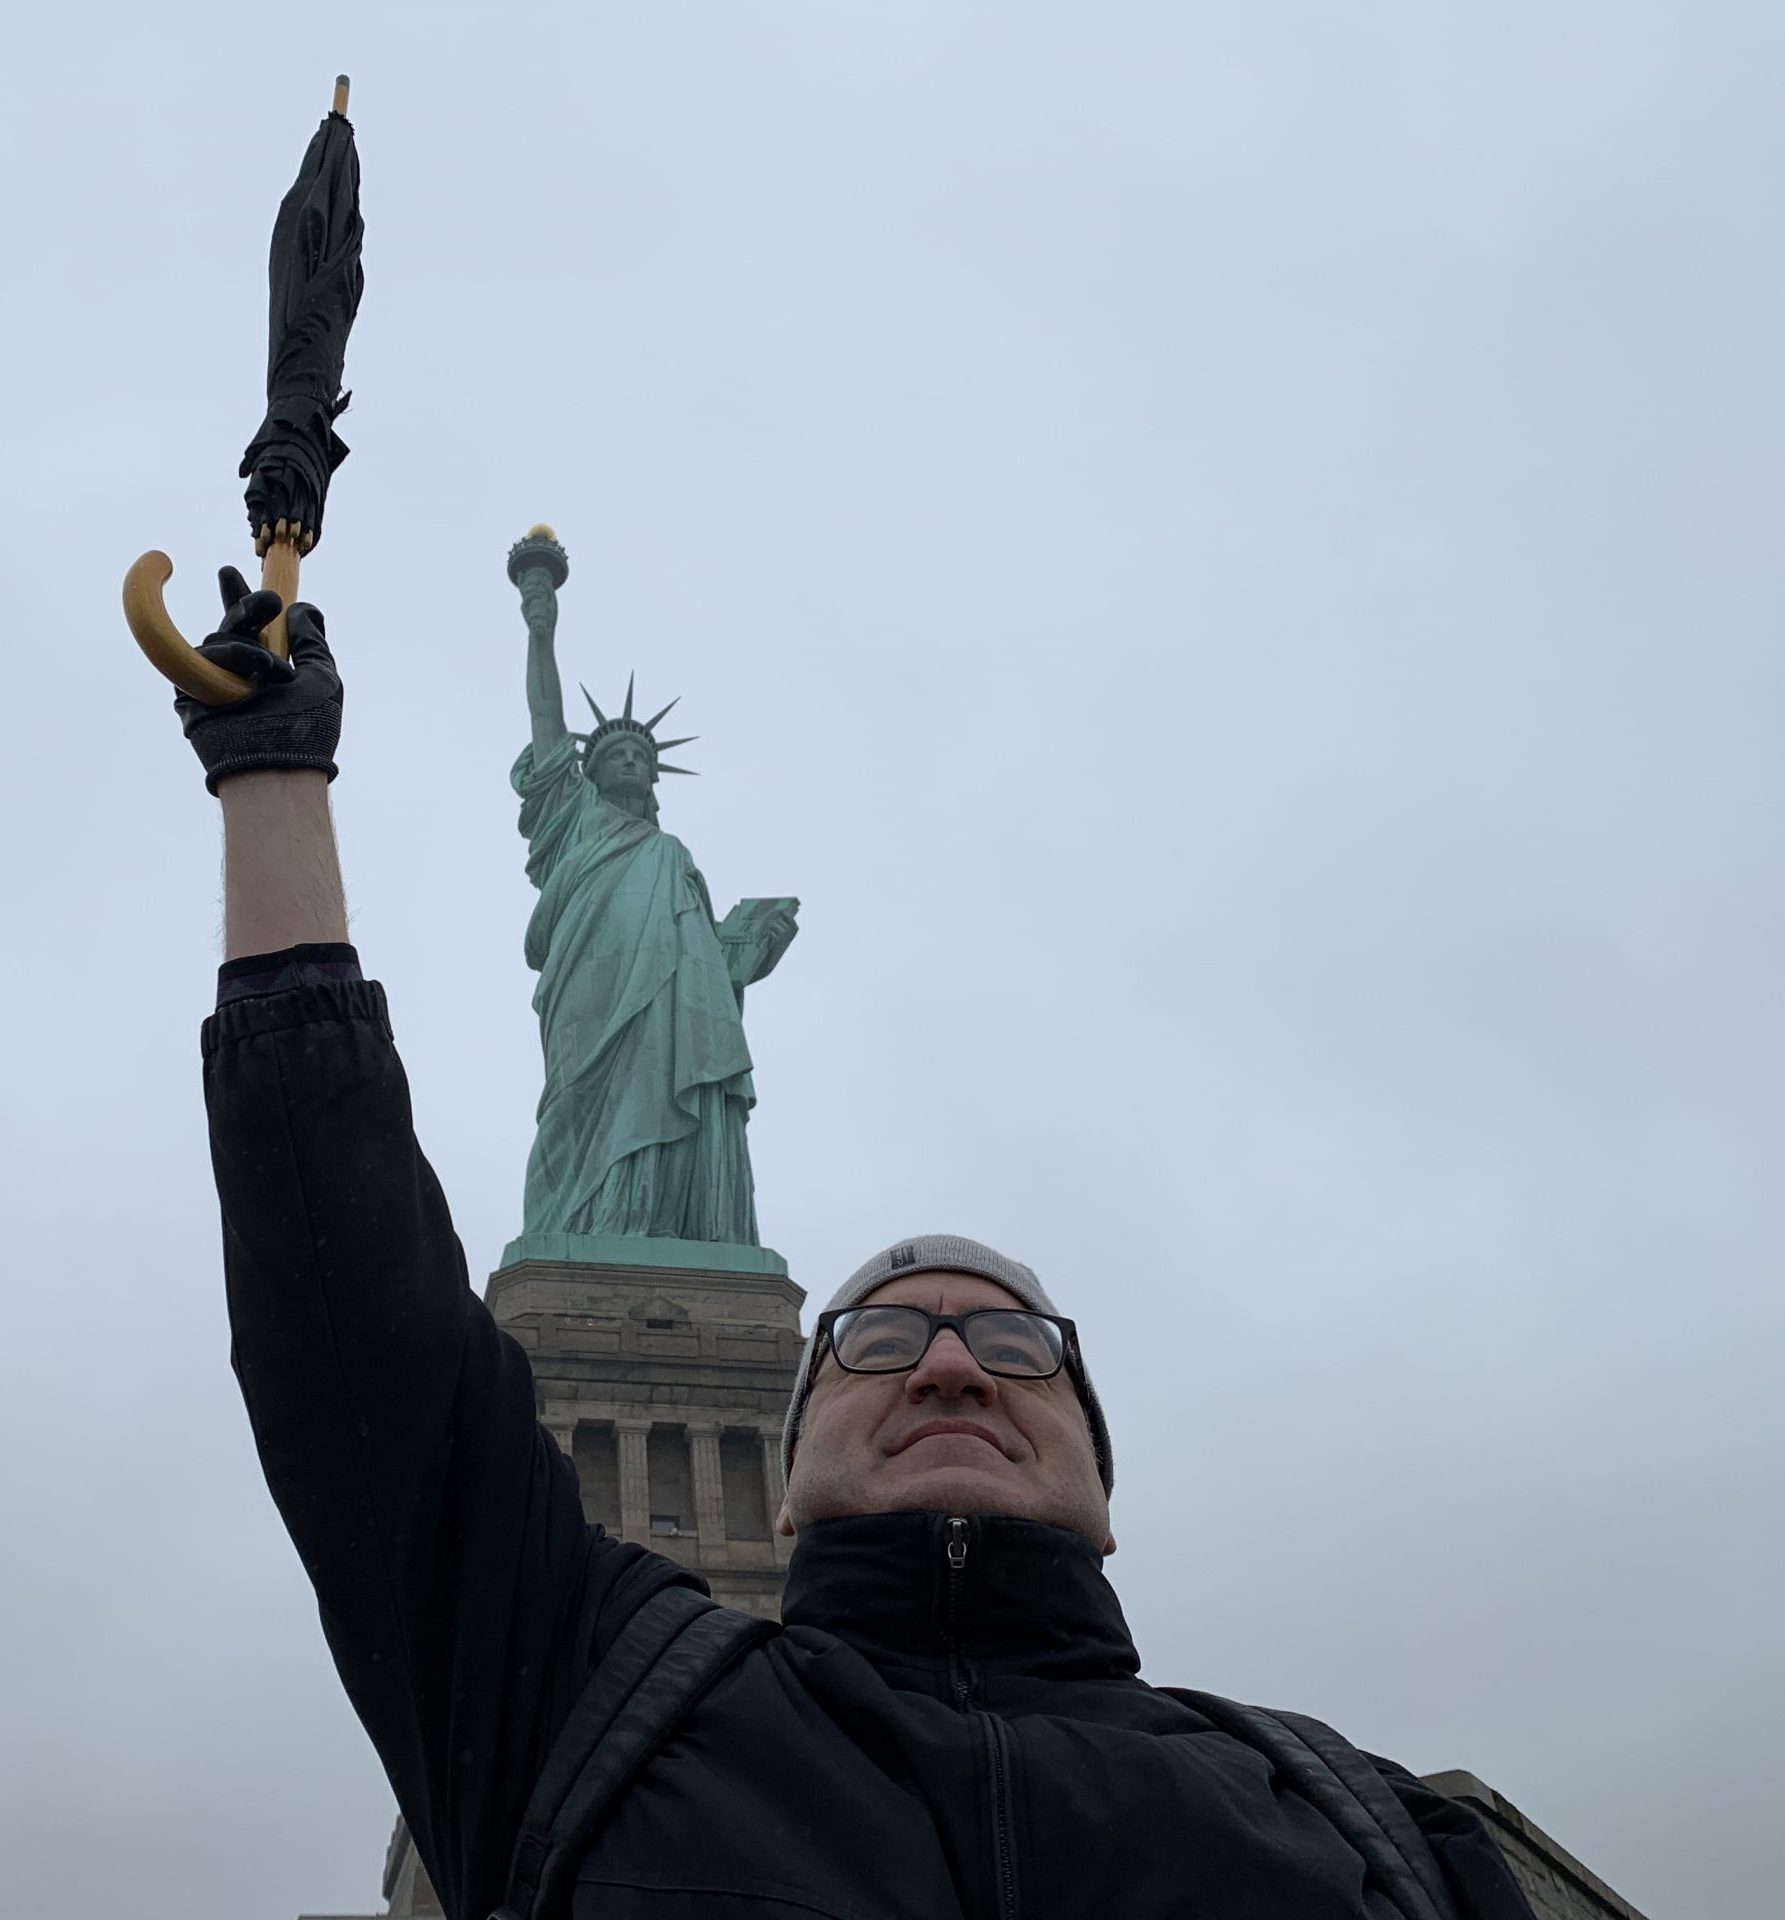 The author standing in front of the Statue of Liberty on a rainy, uncrowded day in February.